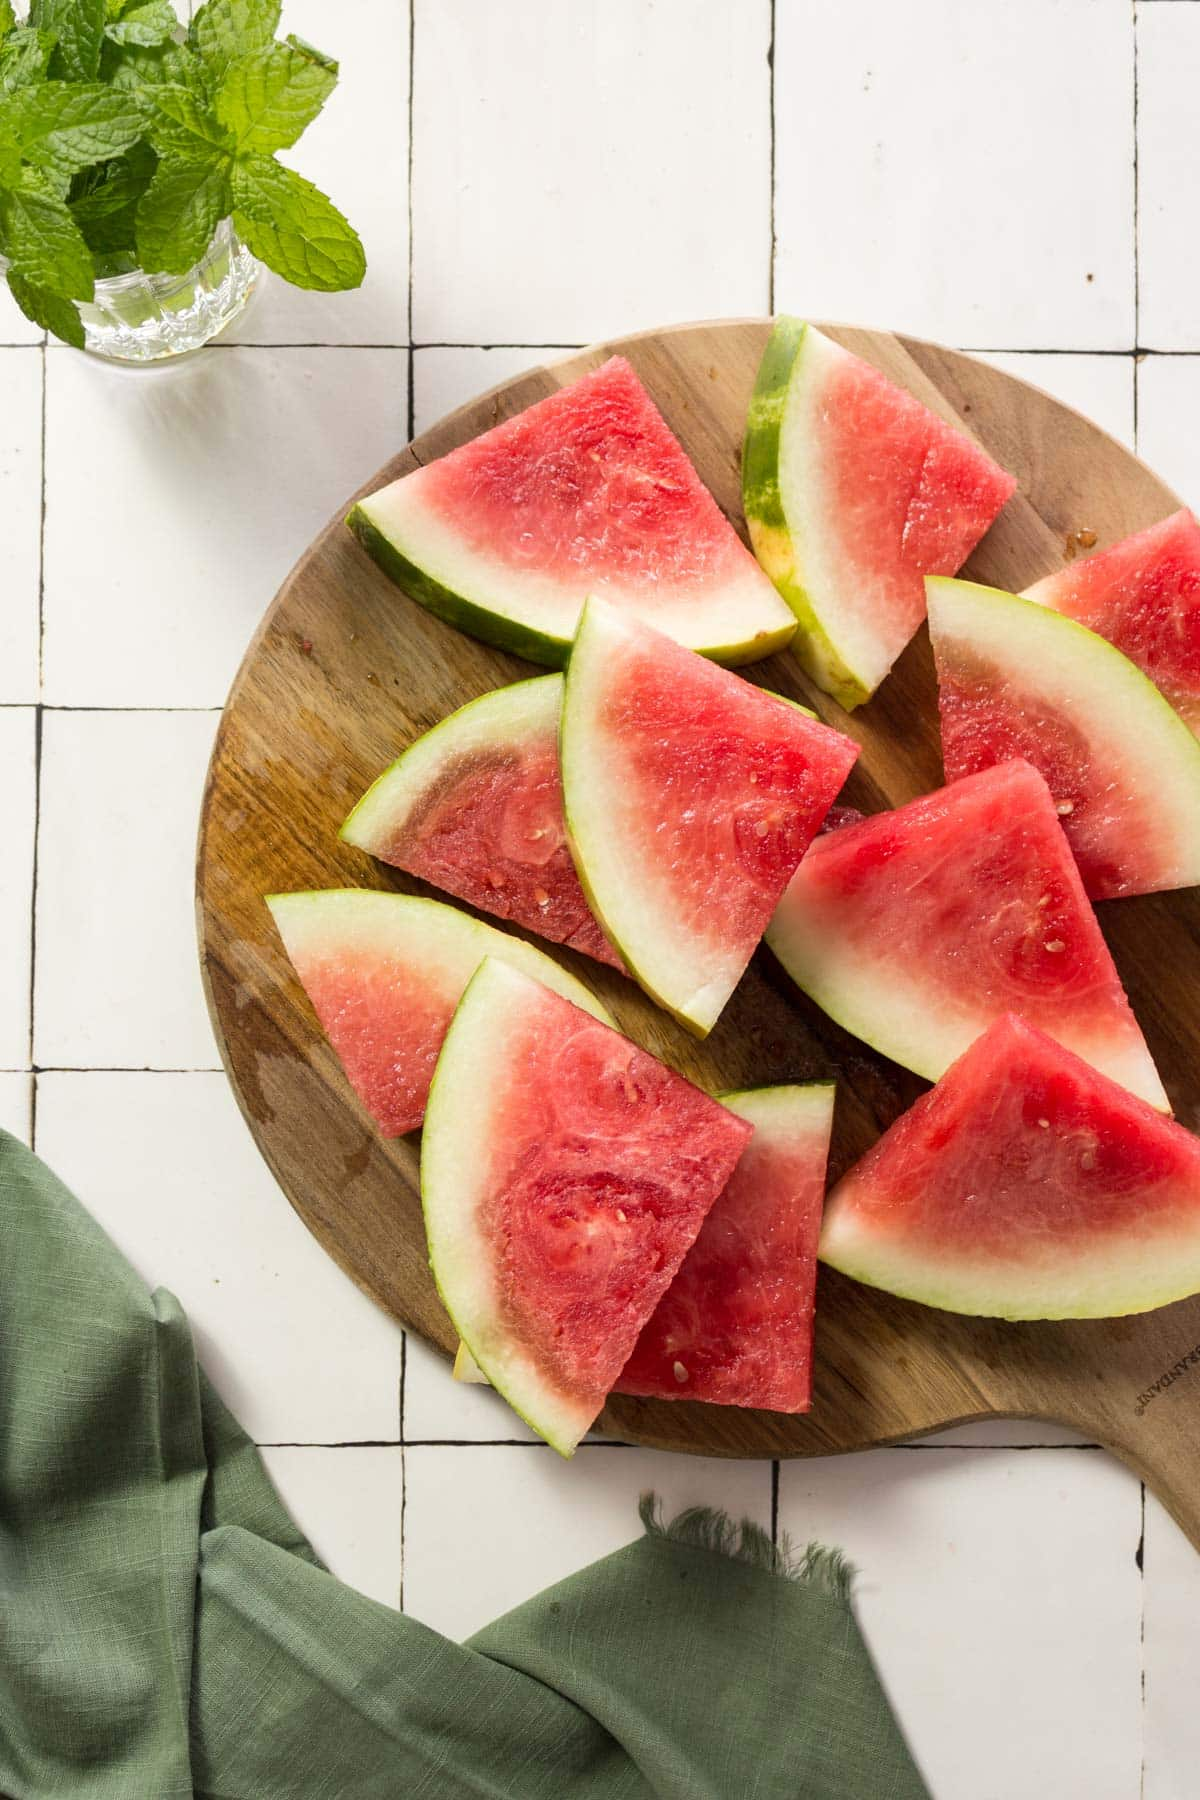 Slices of watermelon on a wooden board